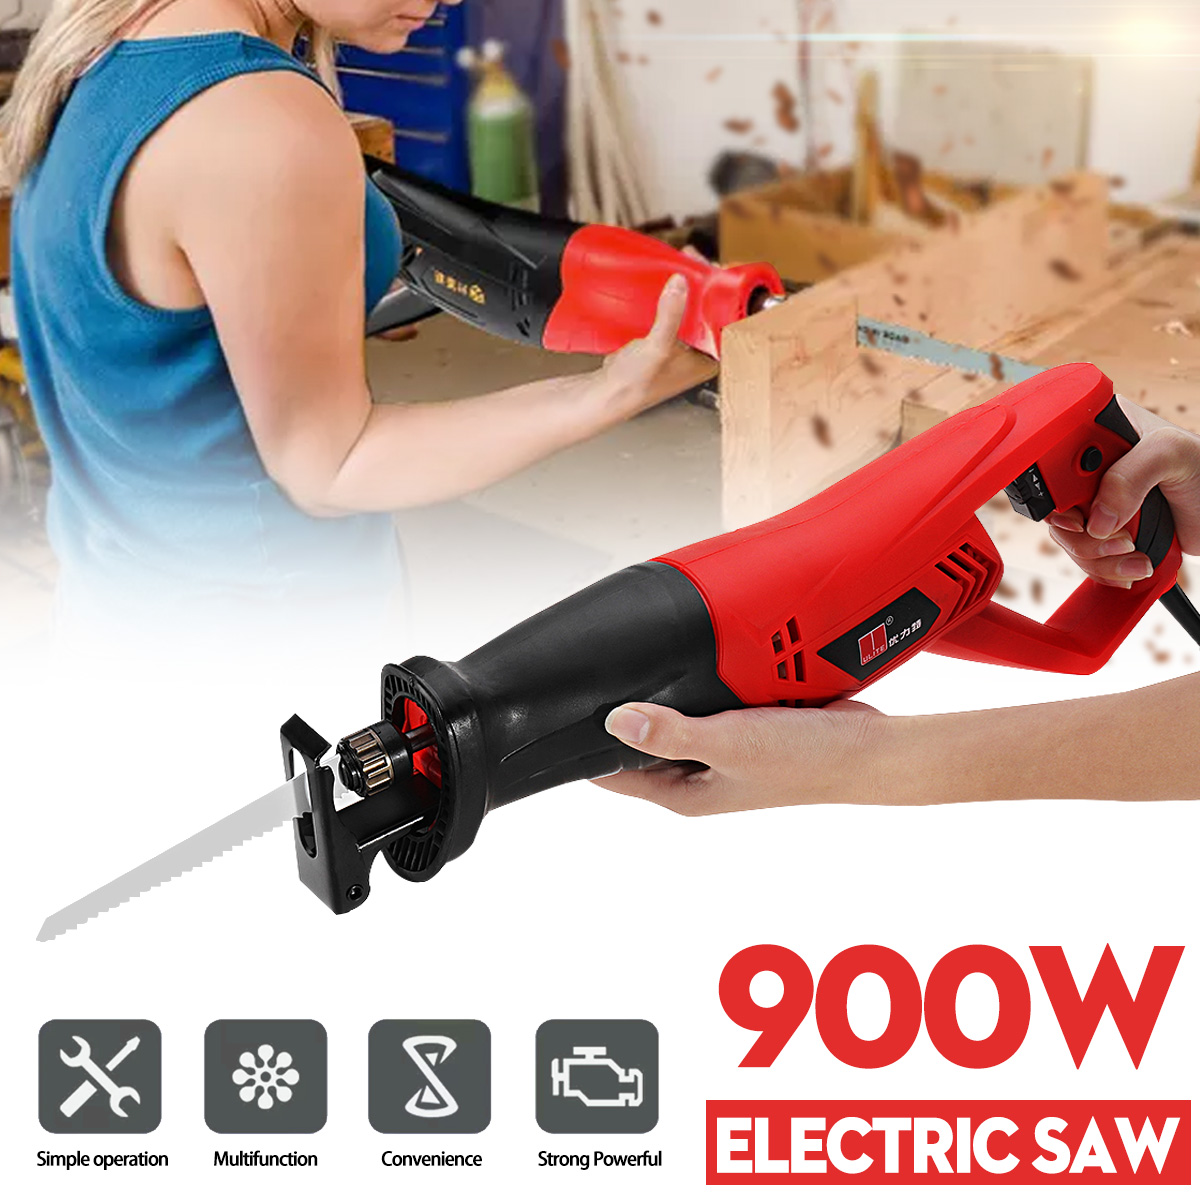 High quality 220V 900W Electric Reciprocating Saw Saber Convert Adapter 2 Blades Wood Metal Plastic Pruning Power chainsaw ToolHigh quality 220V 900W Electric Reciprocating Saw Saber Convert Adapter 2 Blades Wood Metal Plastic Pruning Power chainsaw Tool